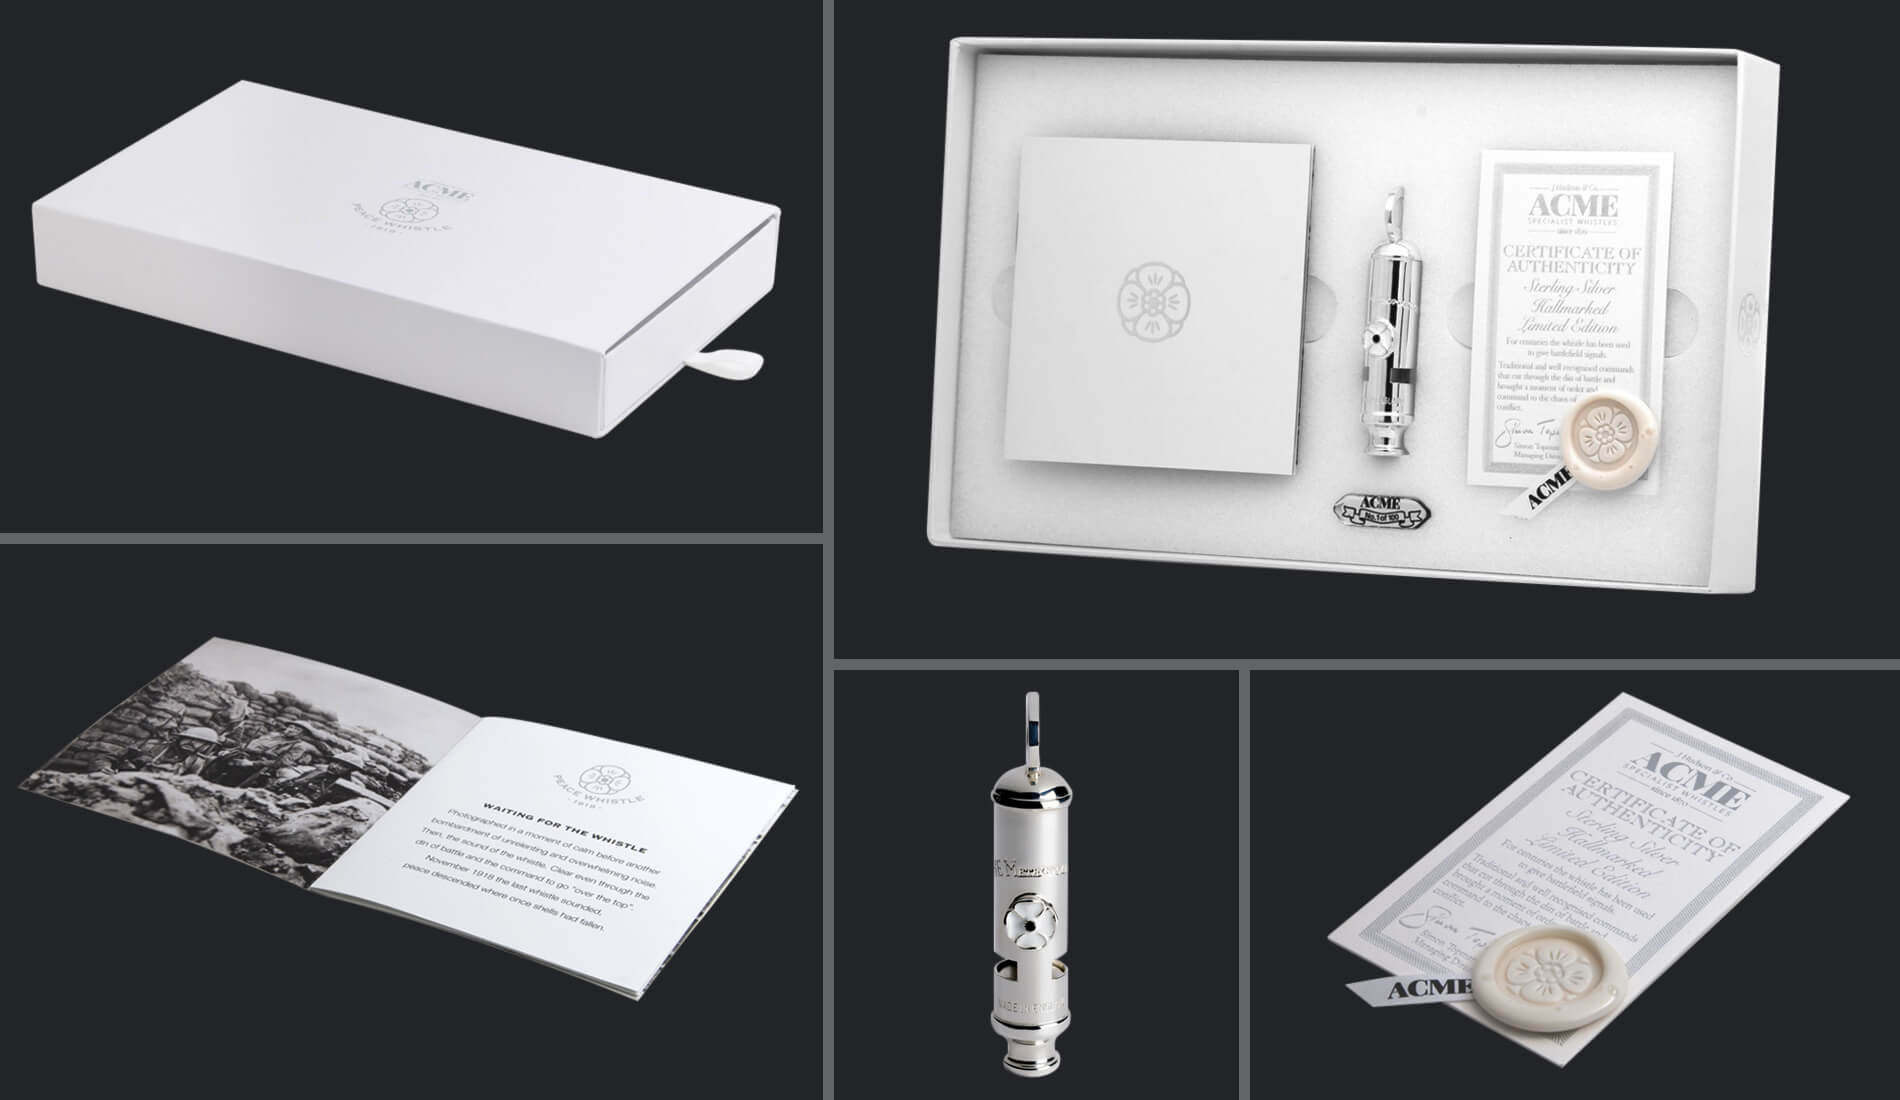 Packaging design for their limited edition world war one peace whistle, white packaging on a white background